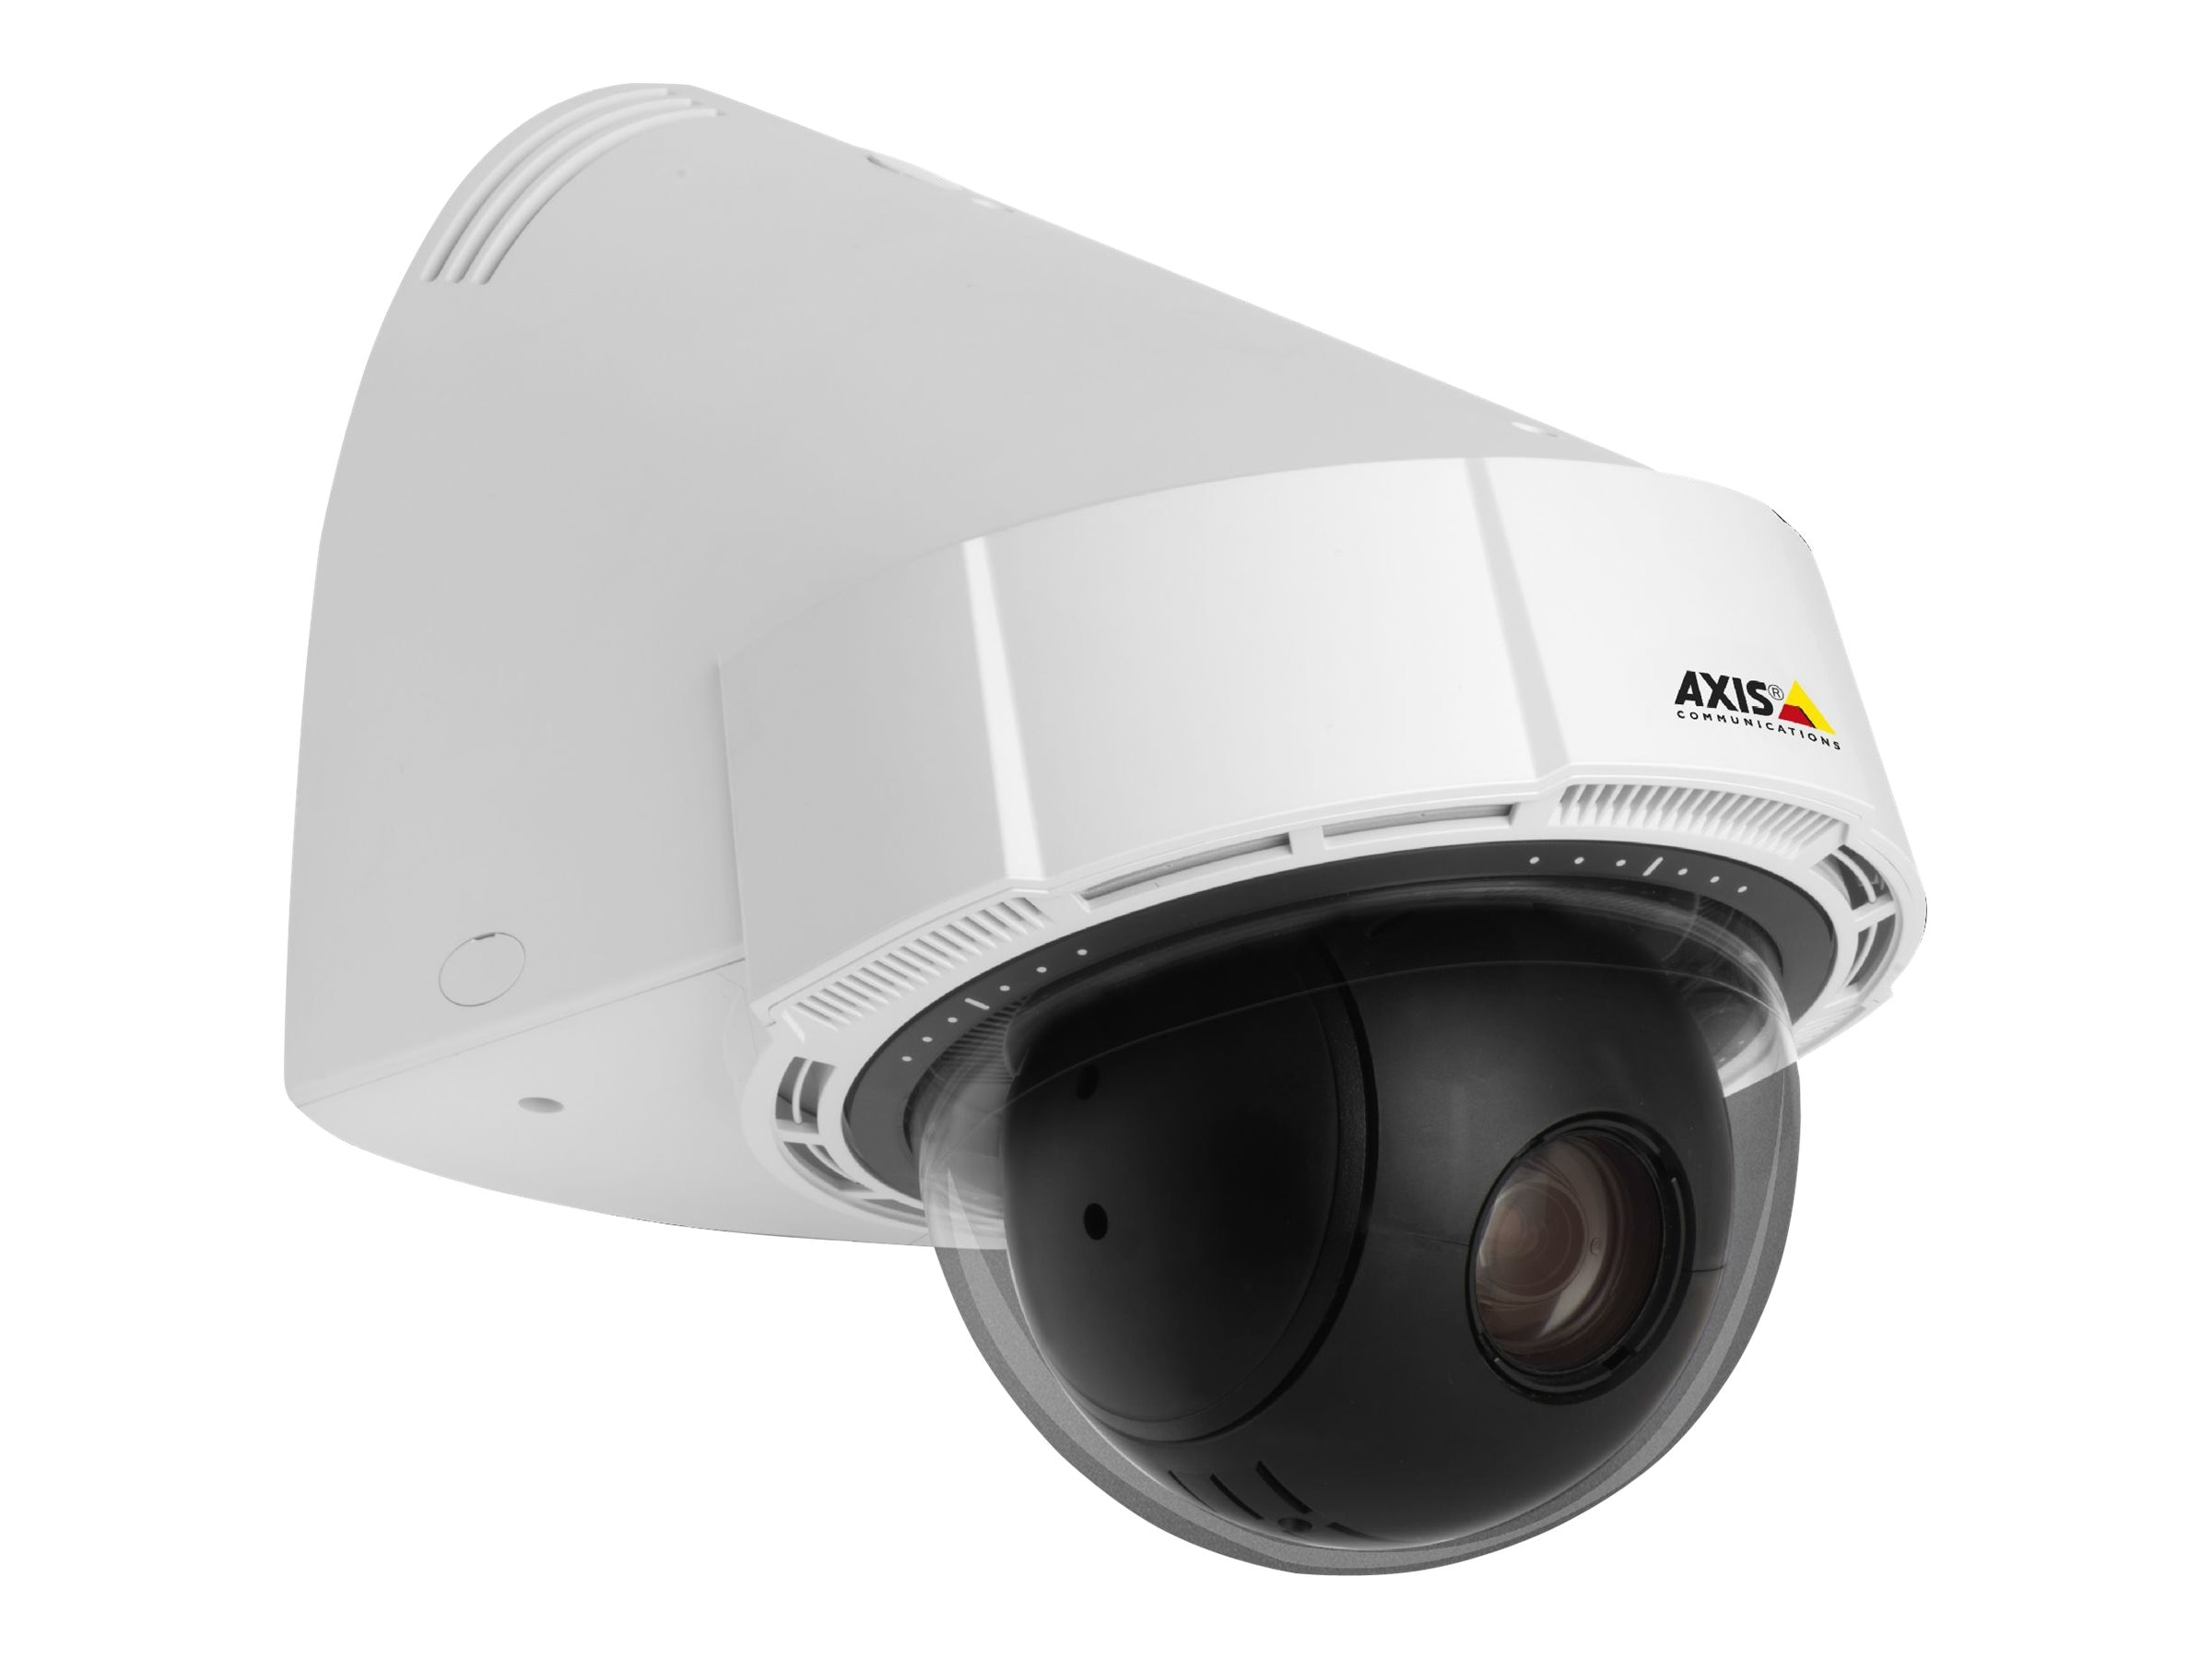 Axis P5415-E PTZ Network Dome Camera